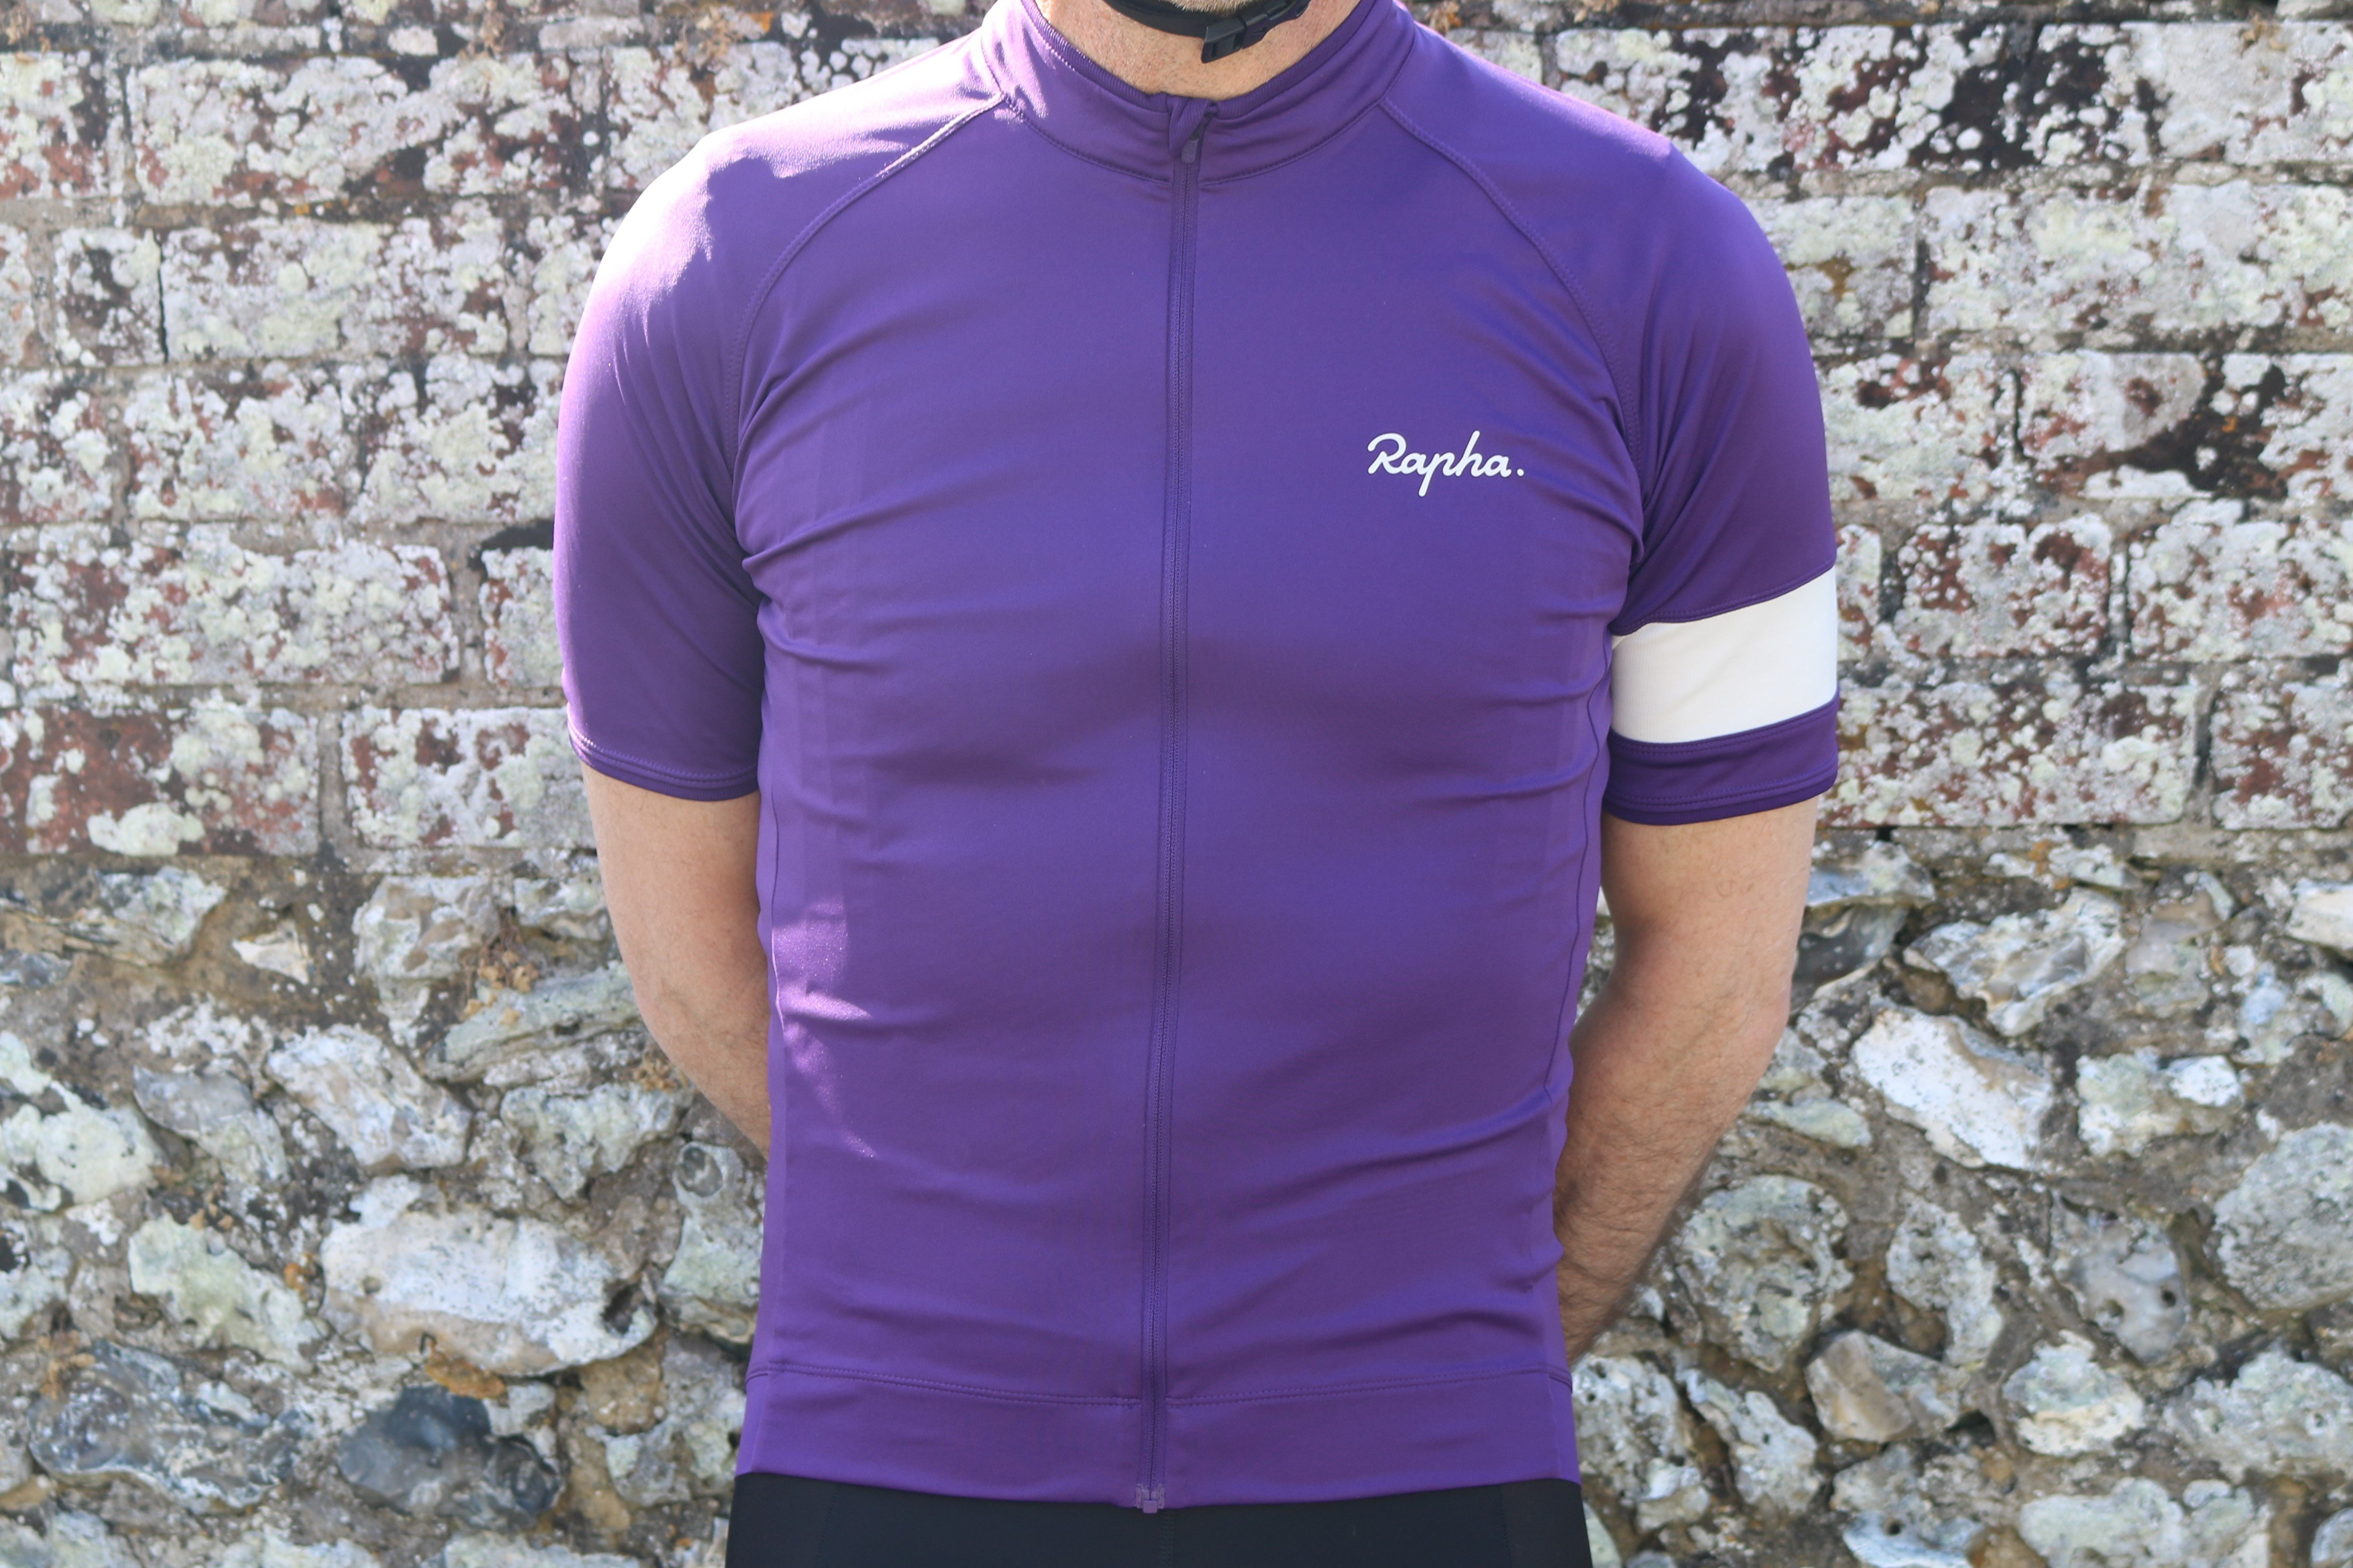 Rapha Core jersey review   Cyclist